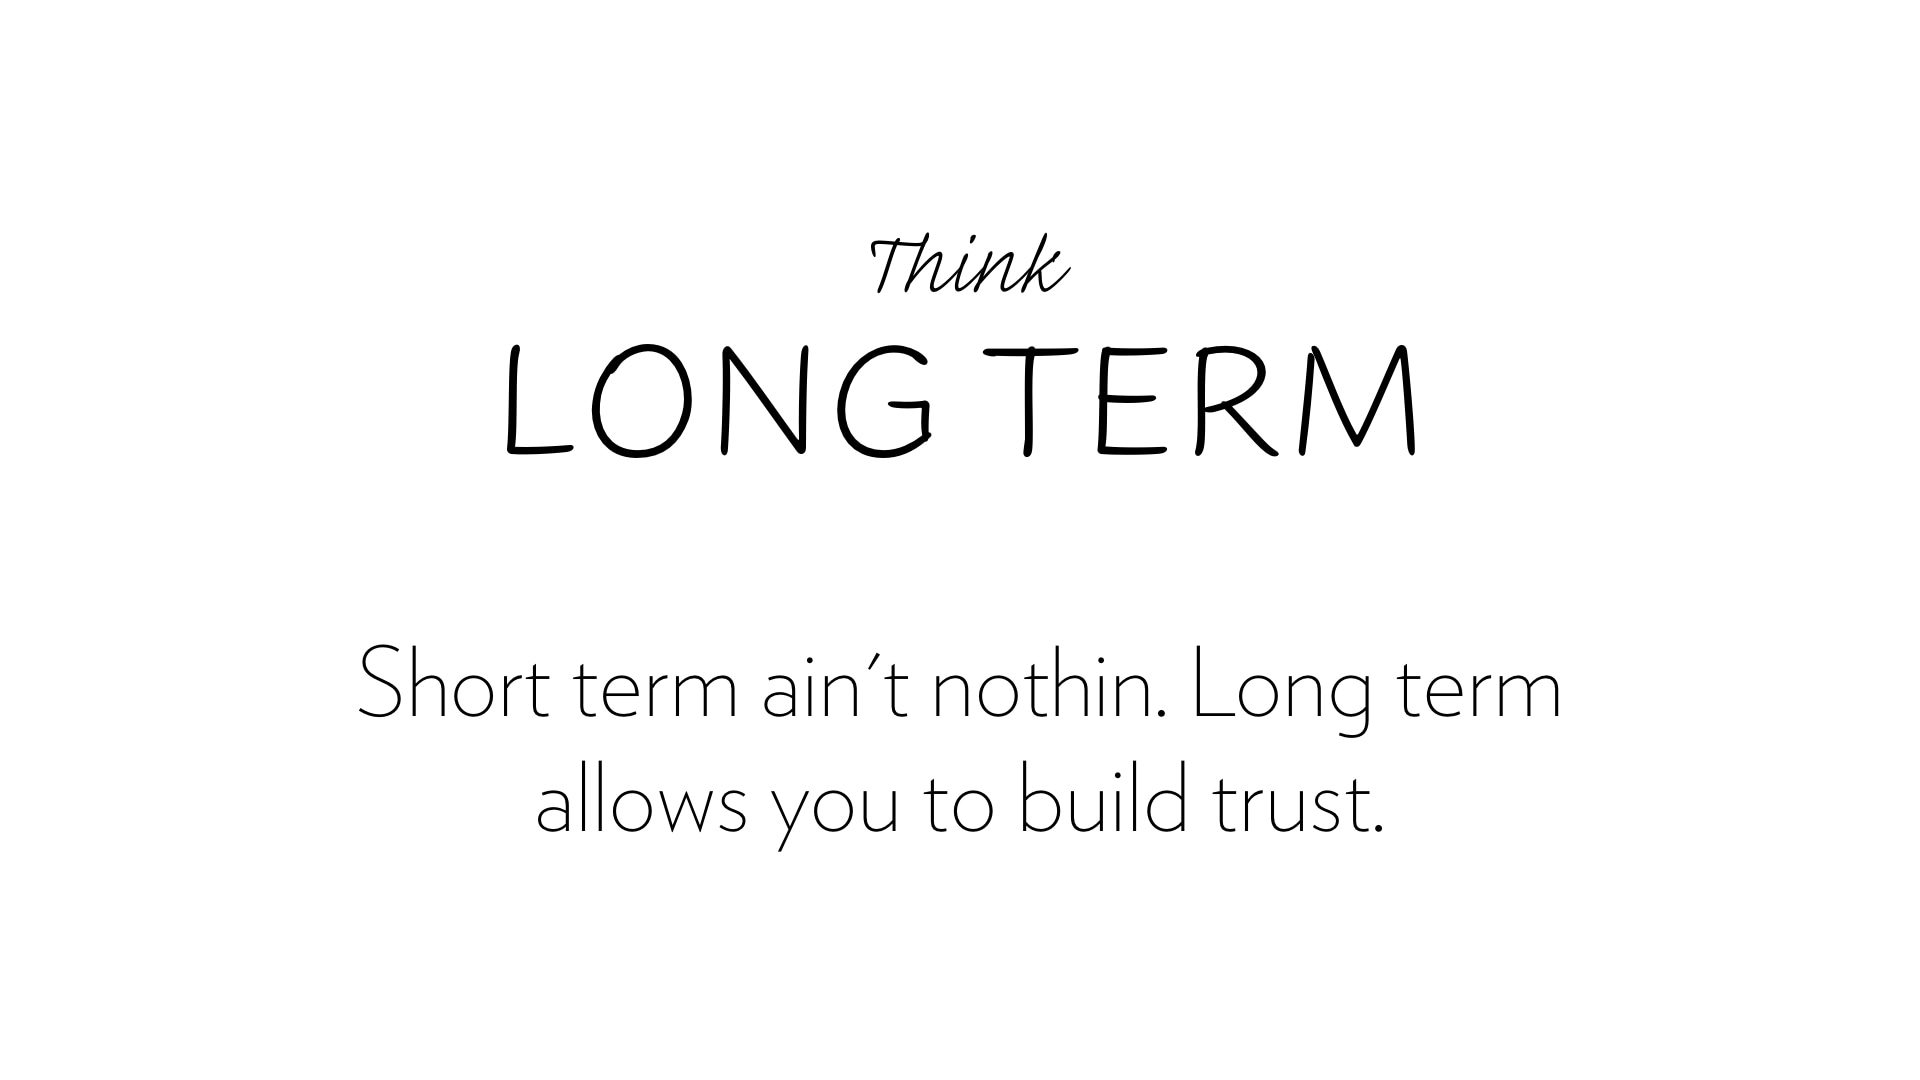 Thing long term, it allows you to build trust.